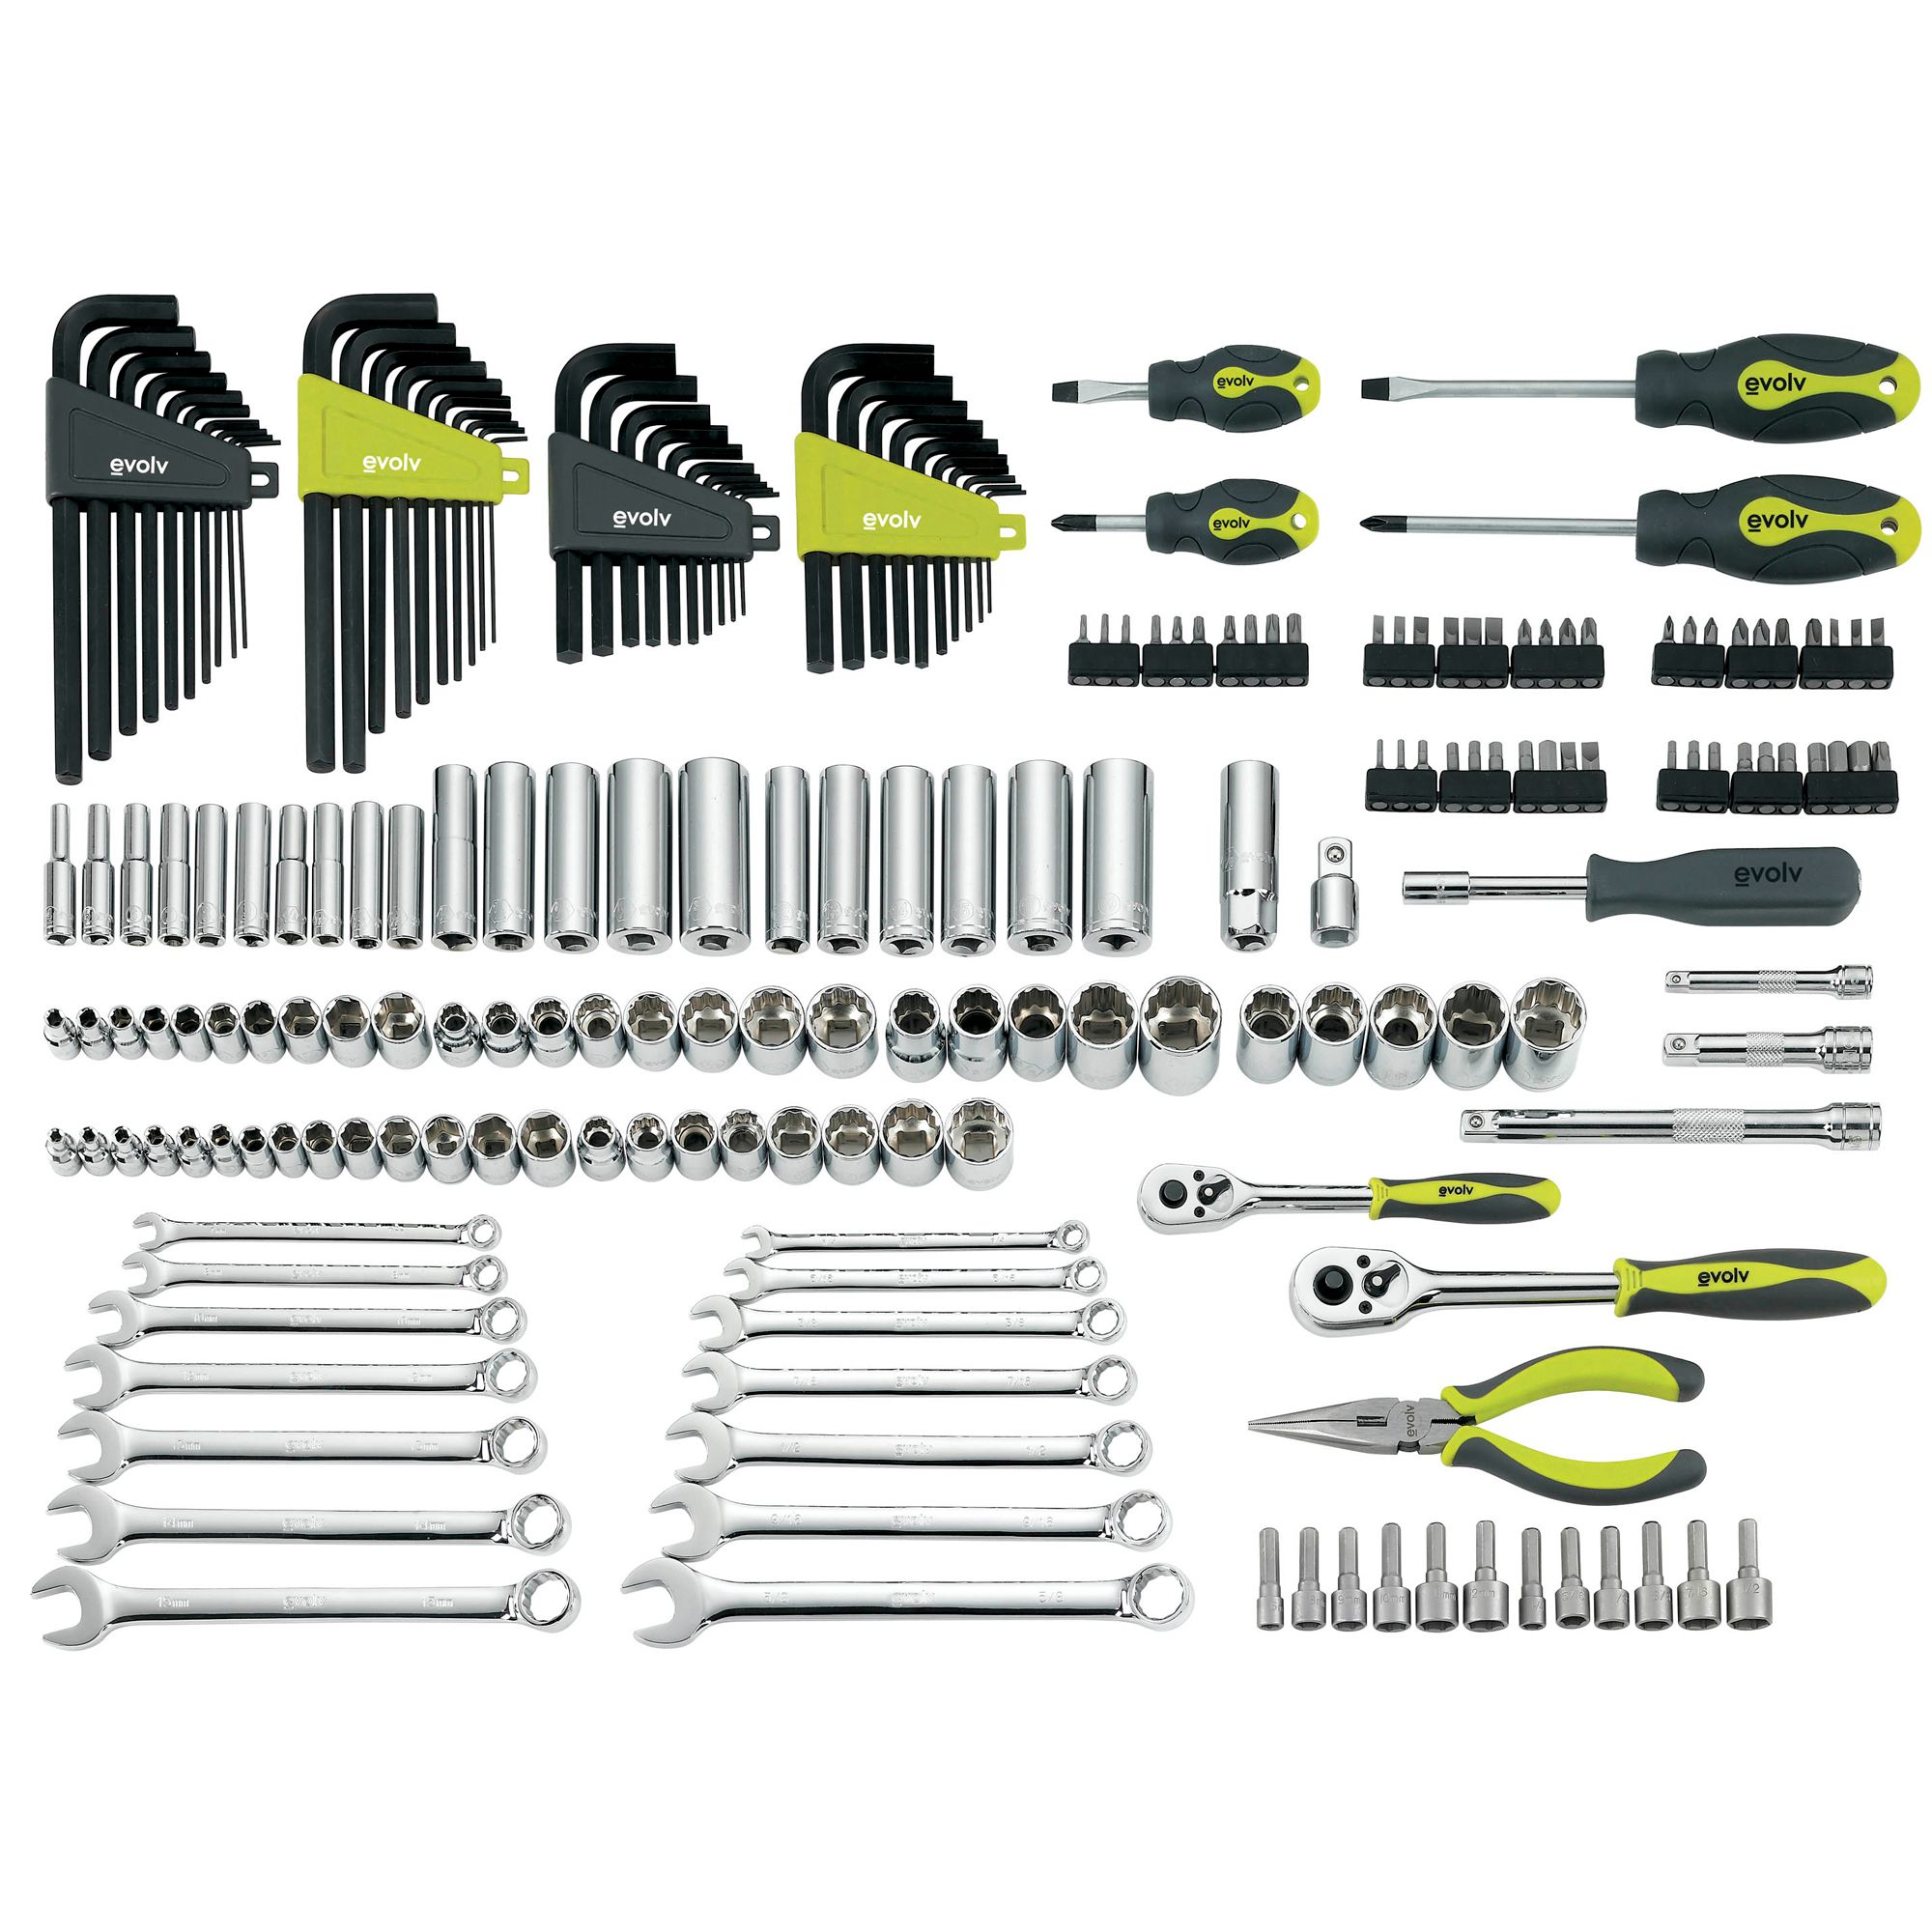 Craftsman Evolv  200 pc. Mechanics Tool Set